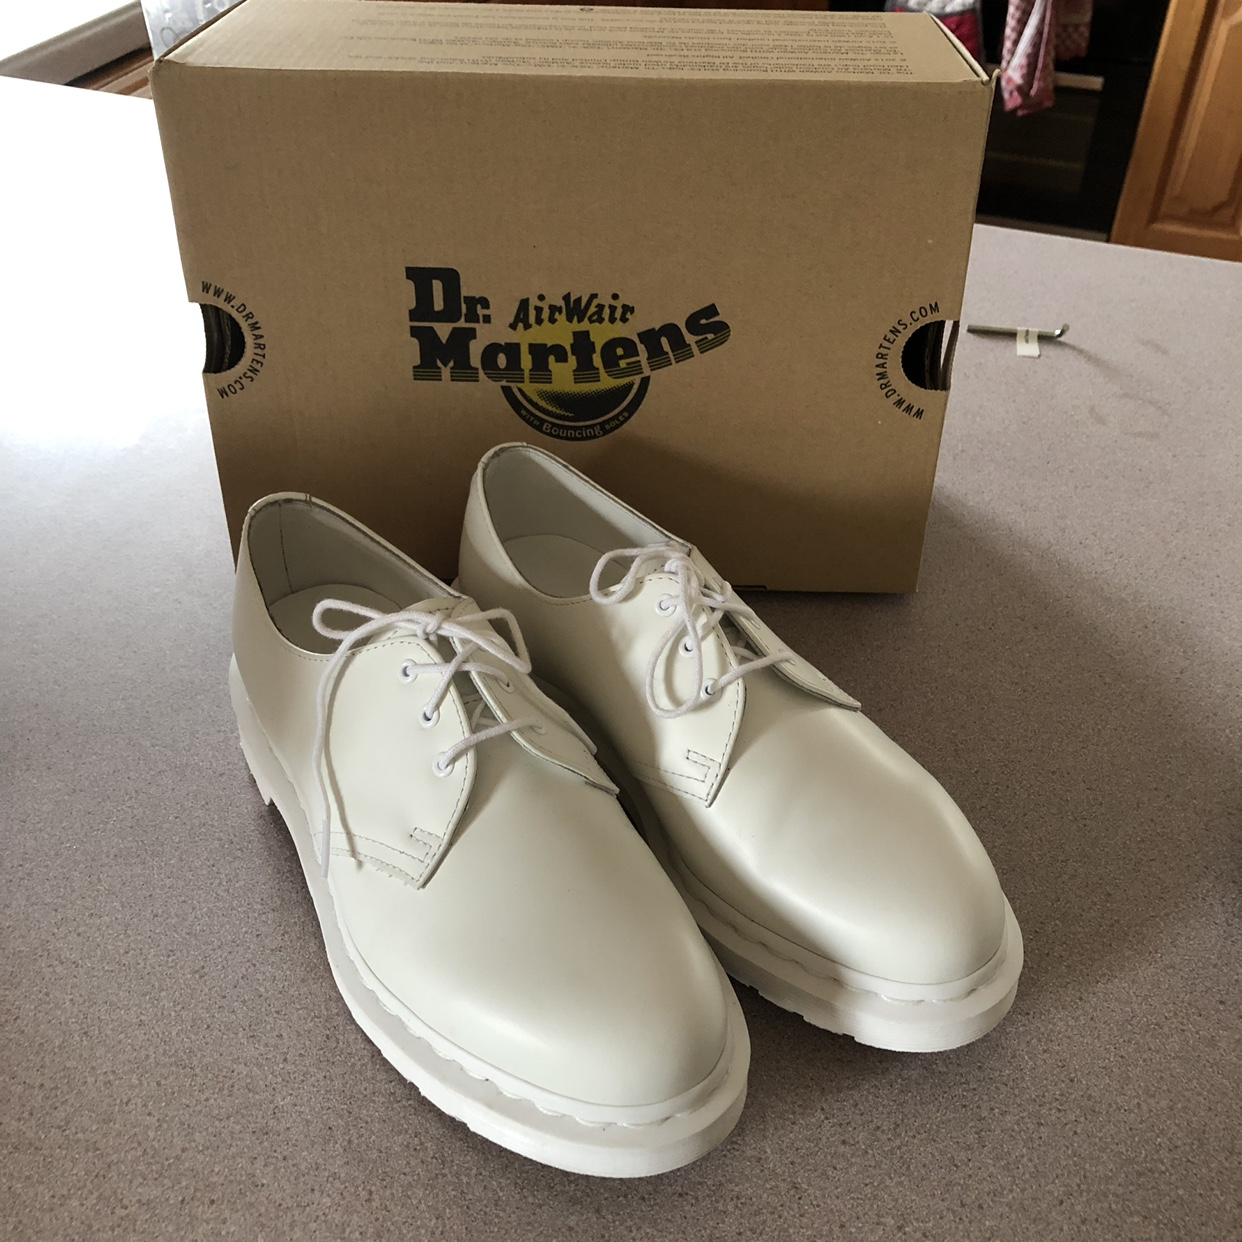 Dr Martens 1461 Mono in Smooth White